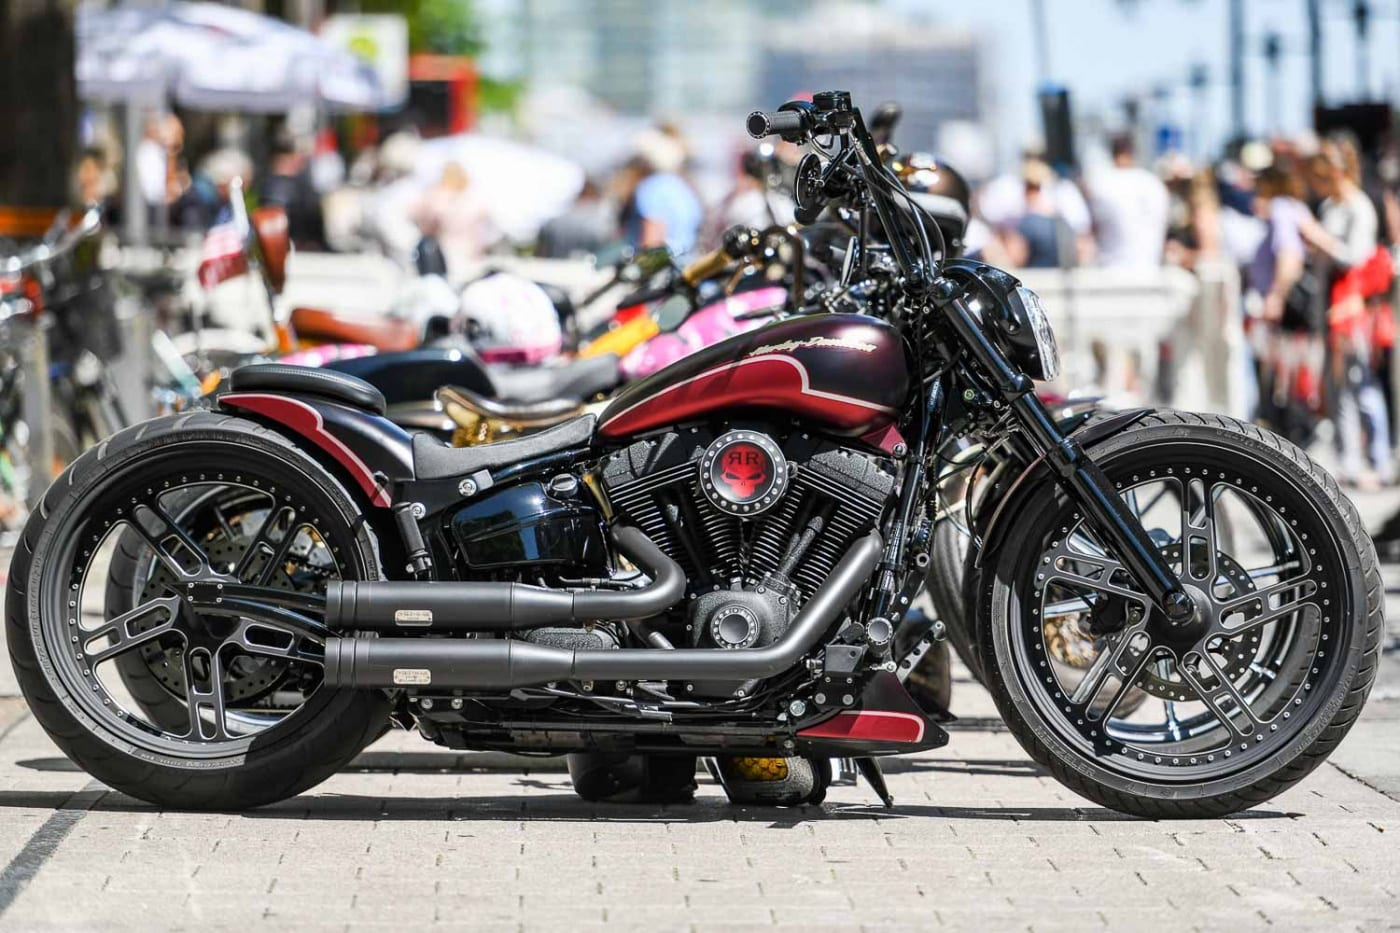 Custombike auf den Hamburg Harley Days